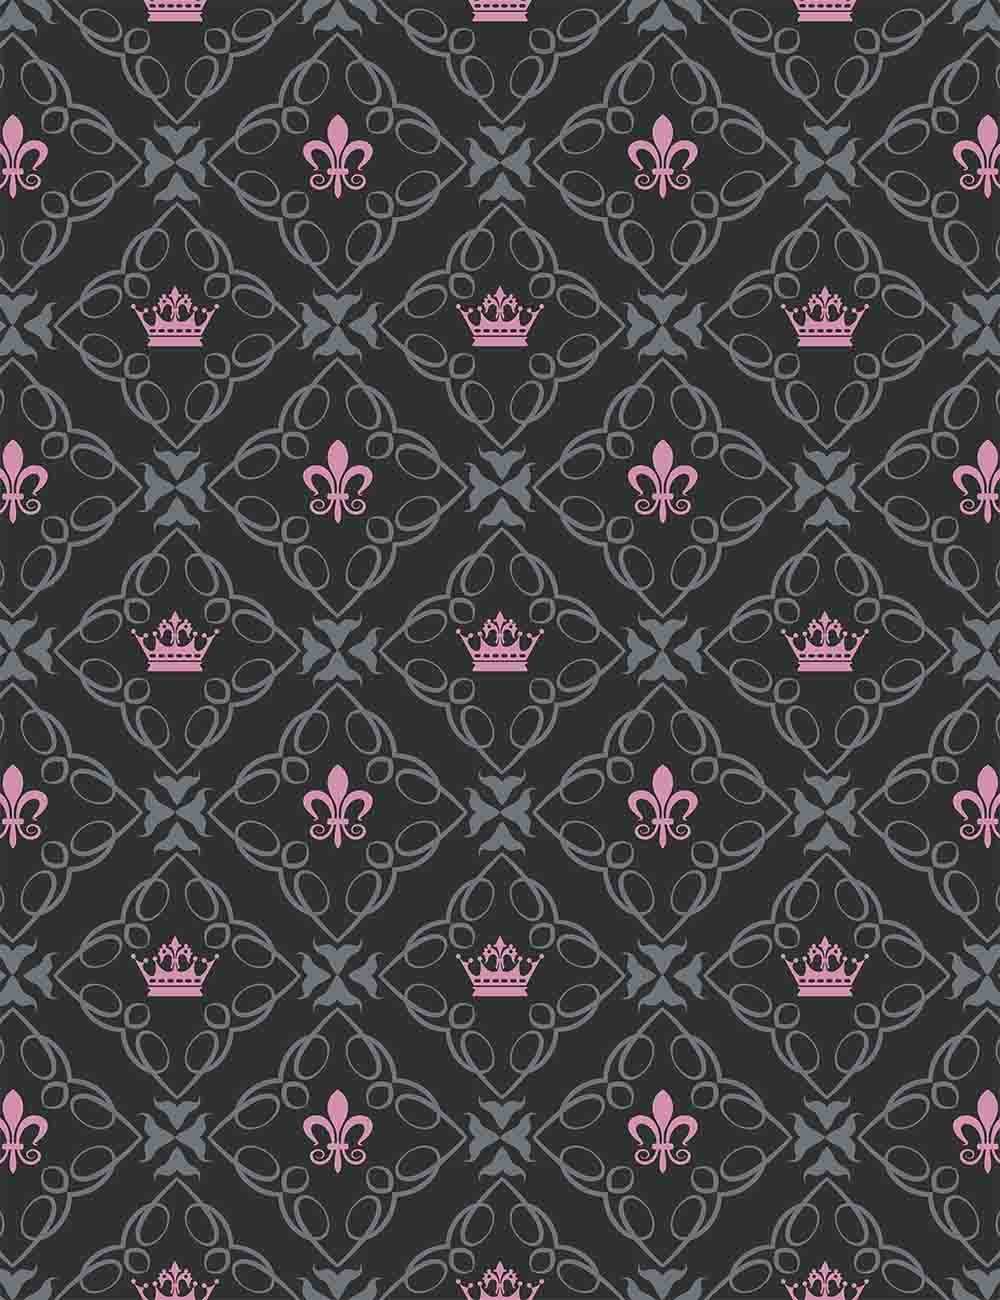 Pink Crown Painted On Black Checker Damask Photography Backdrop